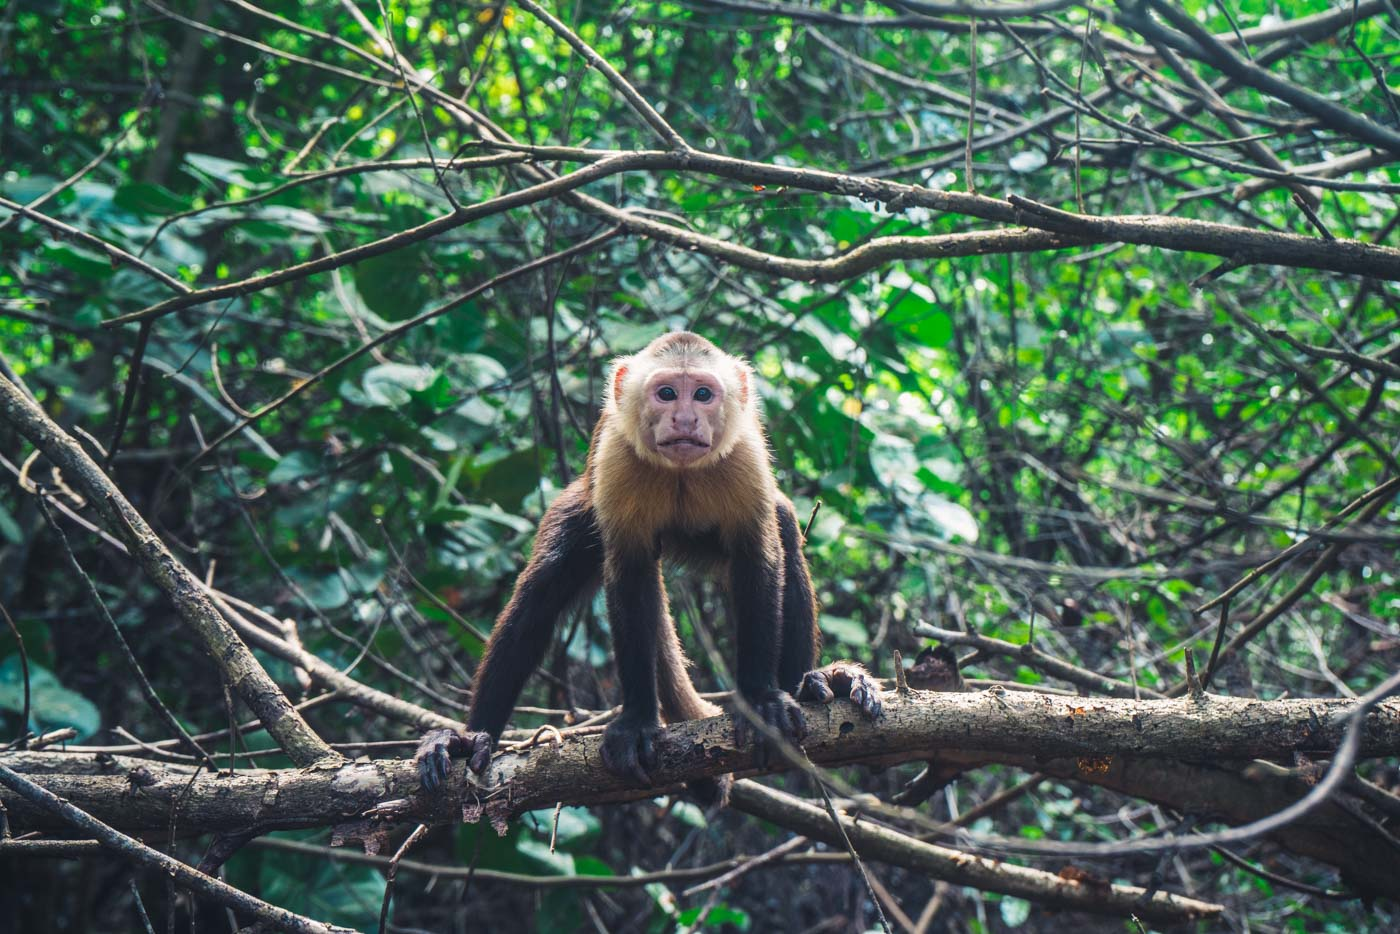 White faced capuchin monkey in Tayrona National Park, Santa Marta